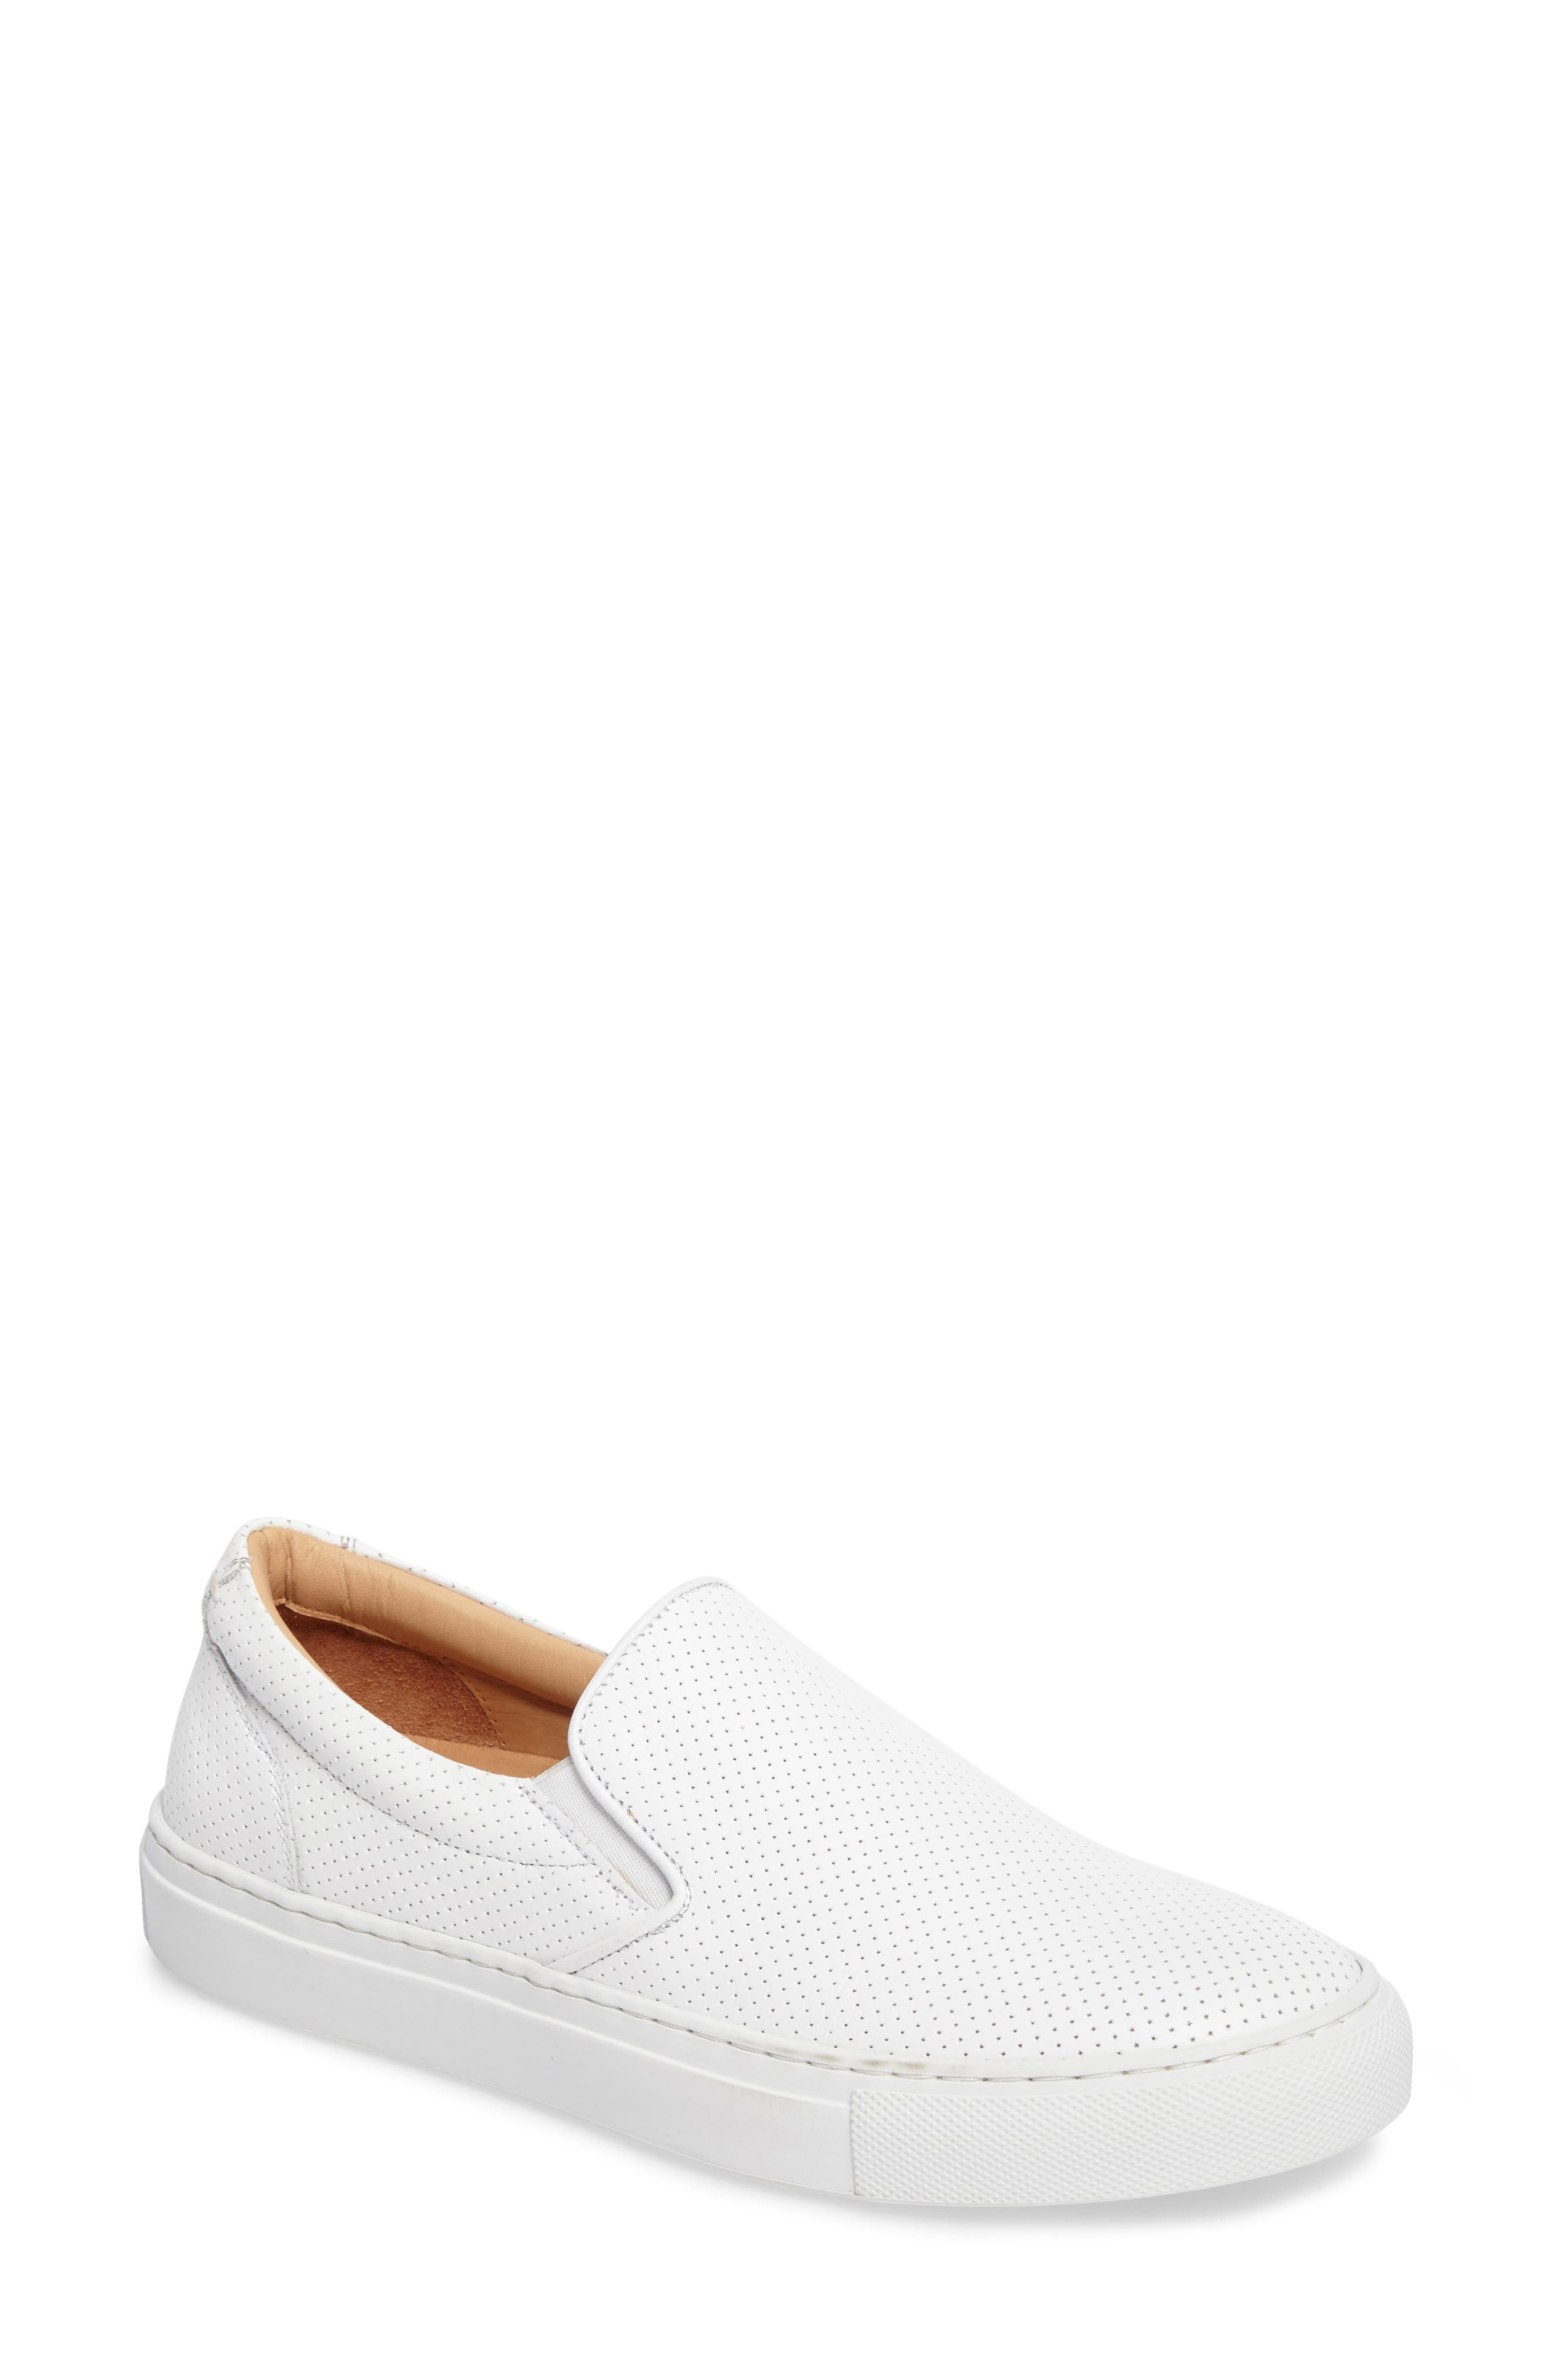 Wooster Slip-On Sneaker,                             Main thumbnail 1, color,                             WHITE PERFORATED